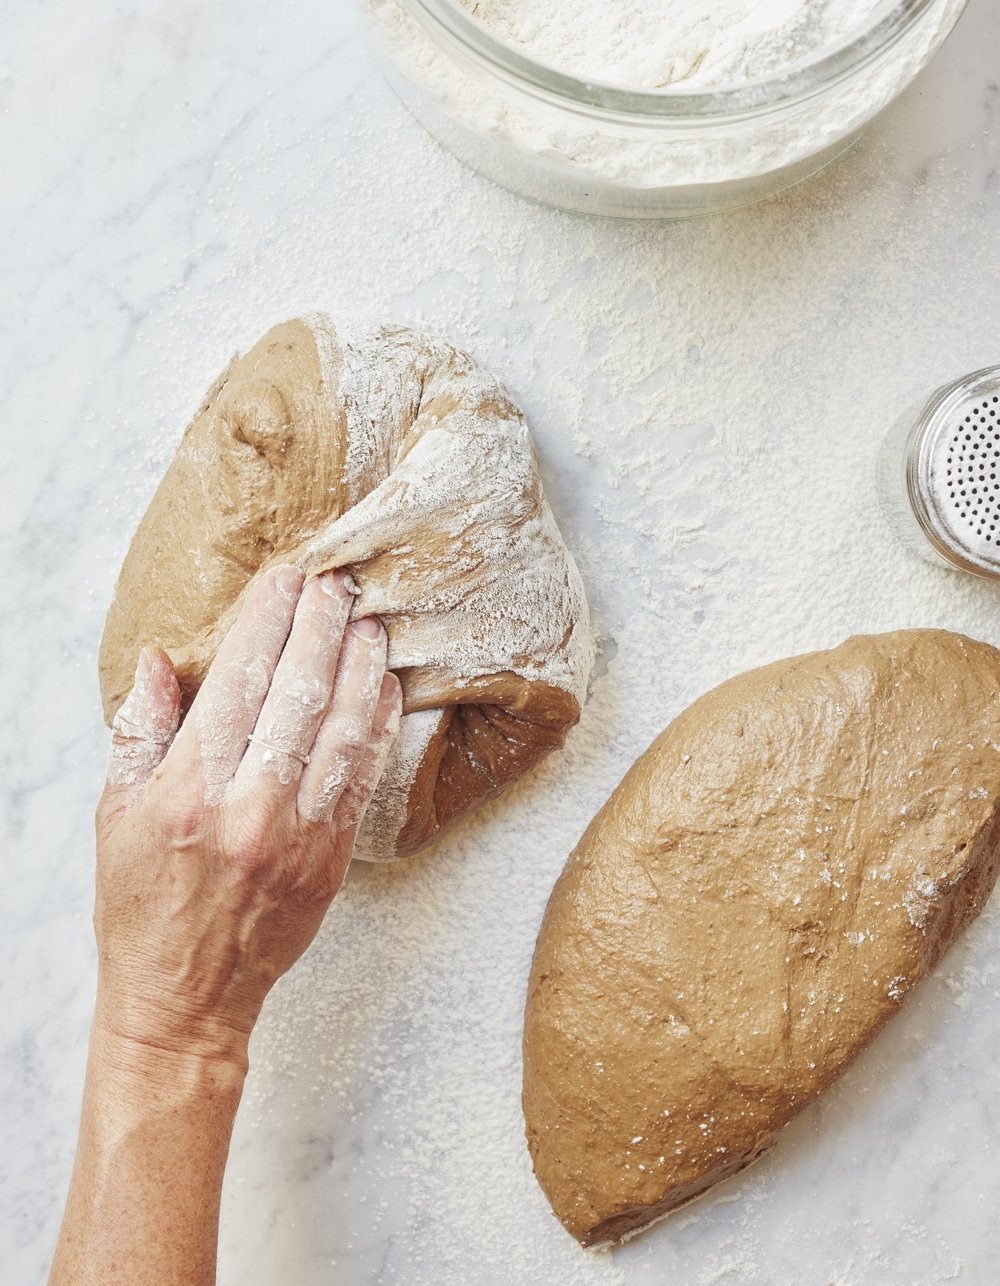 Black Bread being shaped into boules, a recipe featured in Toast & Jam. Photograph by Ngoc Minh Ngo